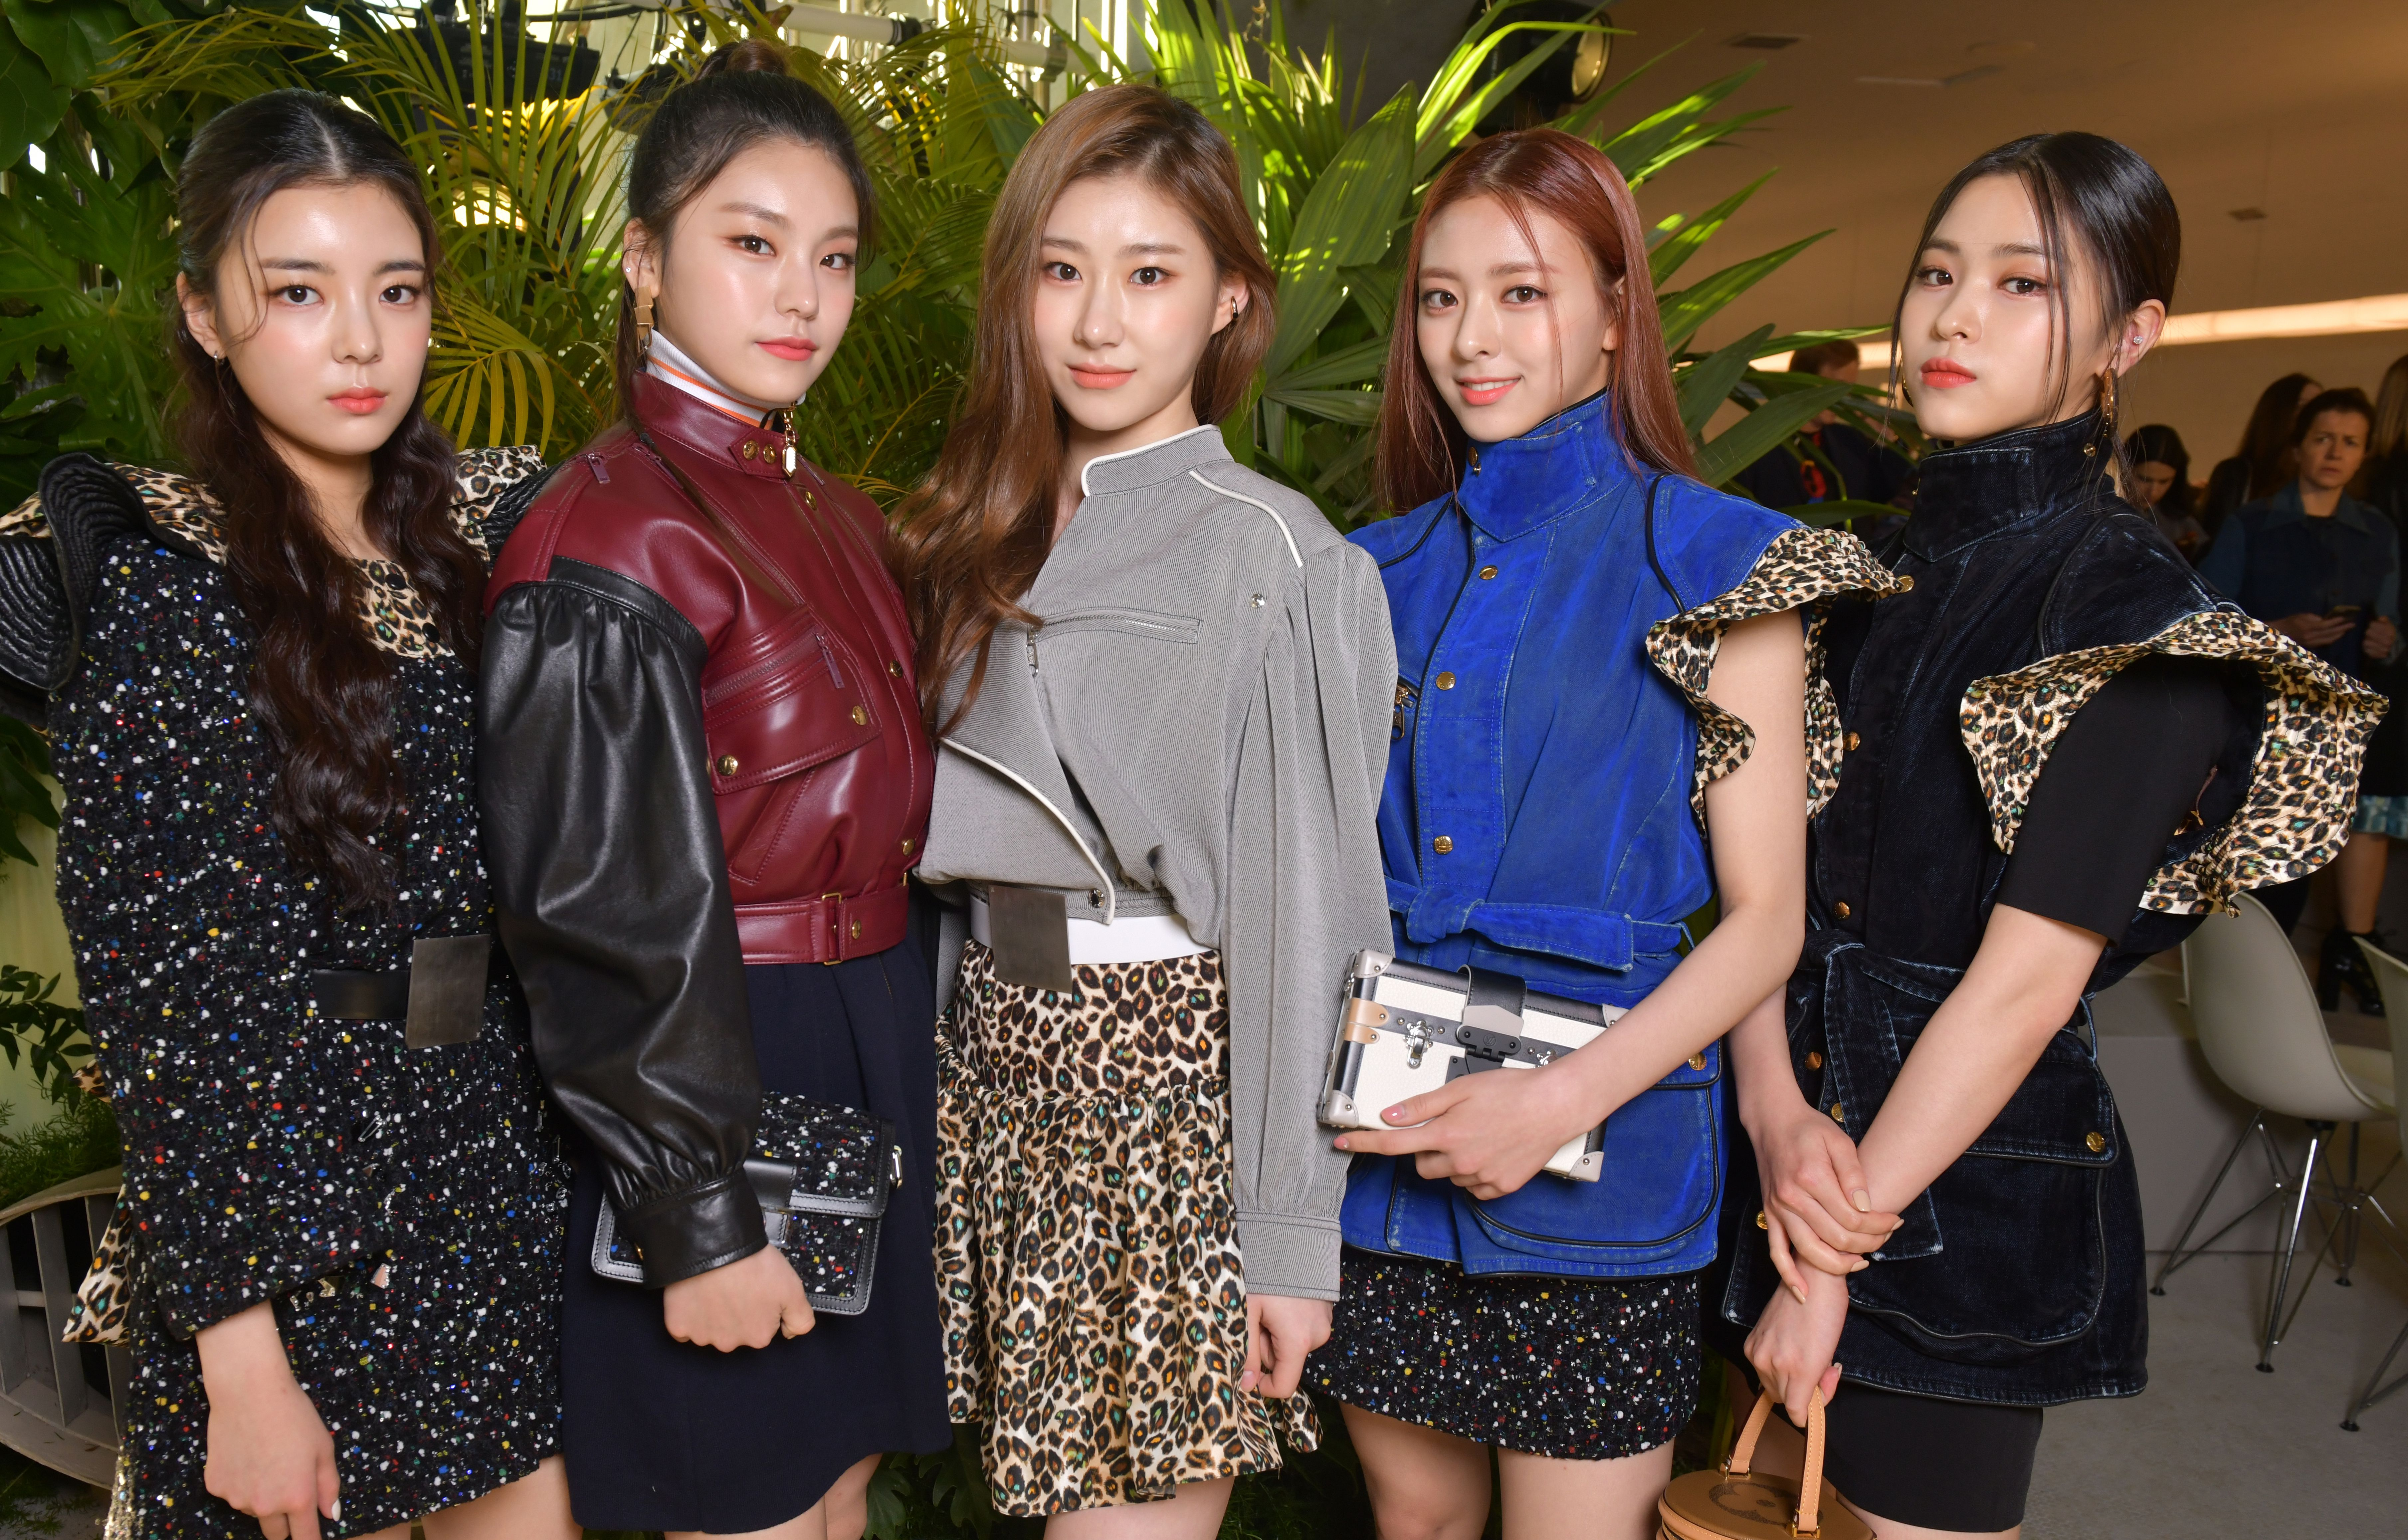 Itzy at the Louis Vuitton Cruise 2020 show.